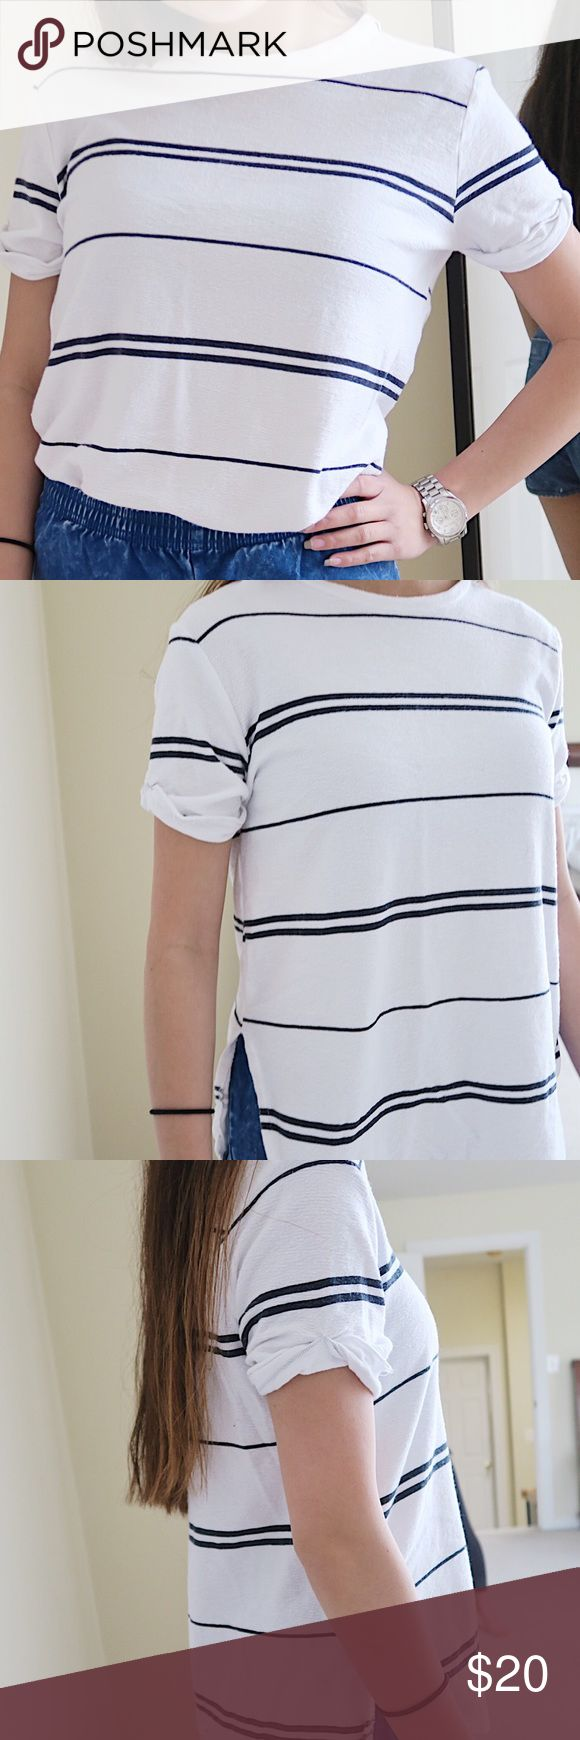 Zara Black + White Striped T - Shirt Zara Black + White Striped T - Shirt ▫️ Used ▫️ Good Condition ▫️ Bundle Discount: 10% off 3 items or more ▫️ no trades | accepting reasonable offers Zara Tops Tees - Short Sleeve